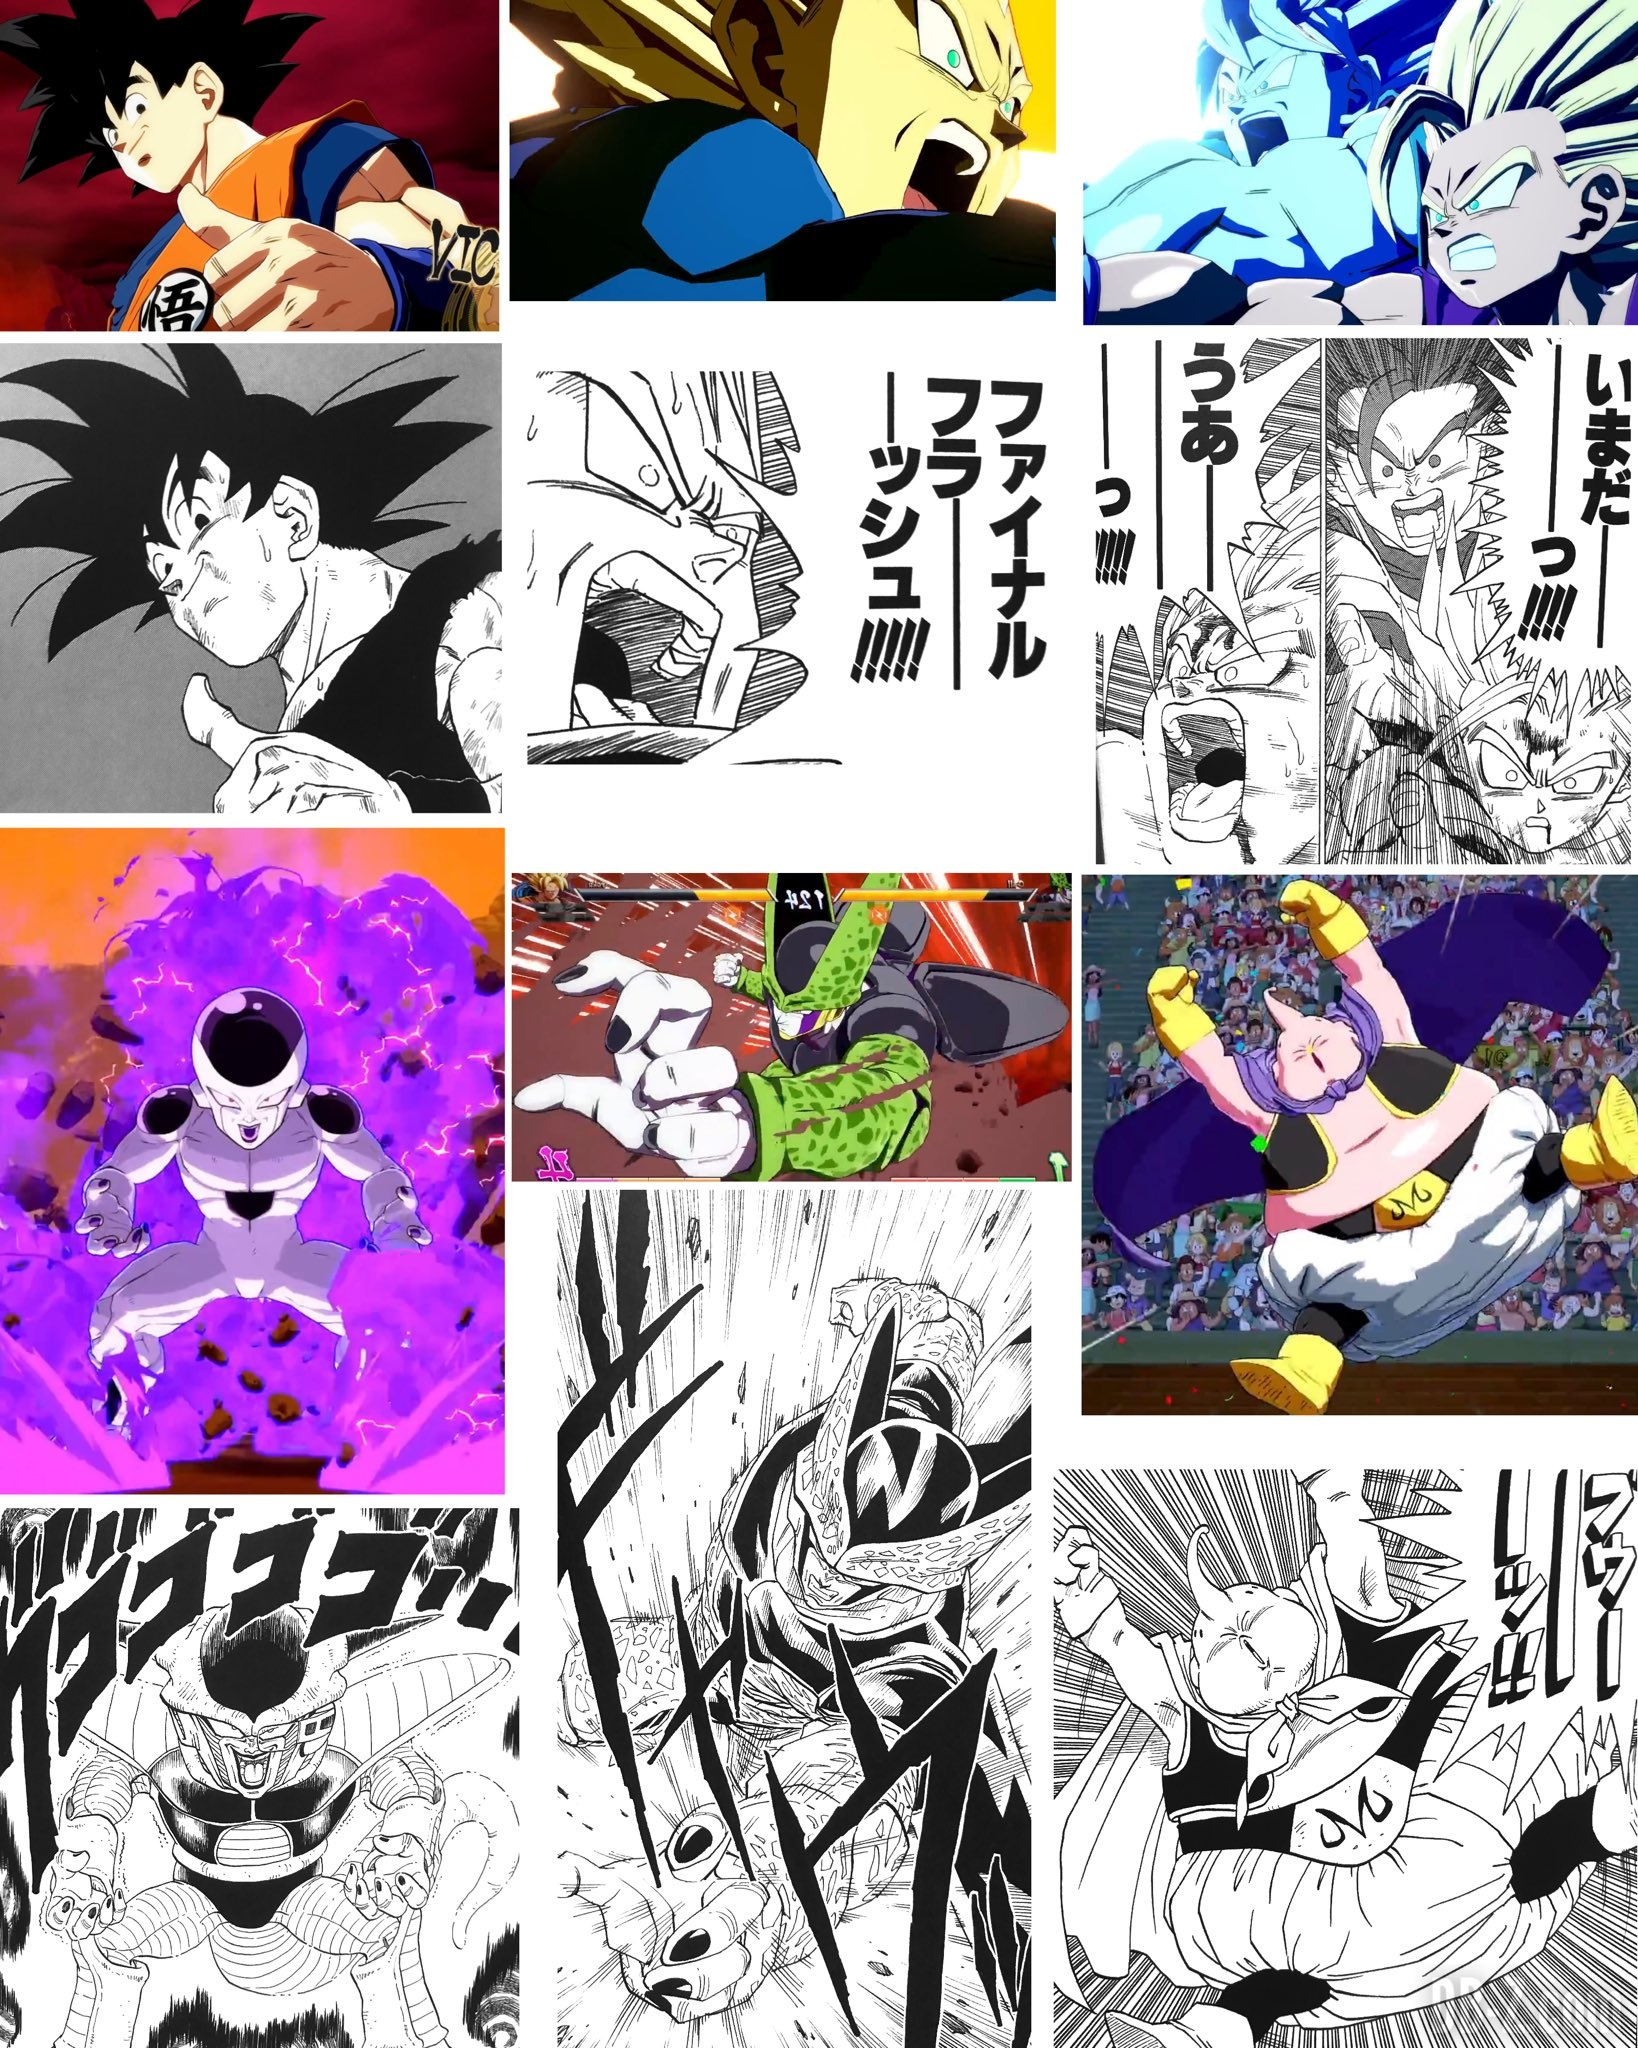 dragon ball fighterz   comparaison avec le manga dragon ball